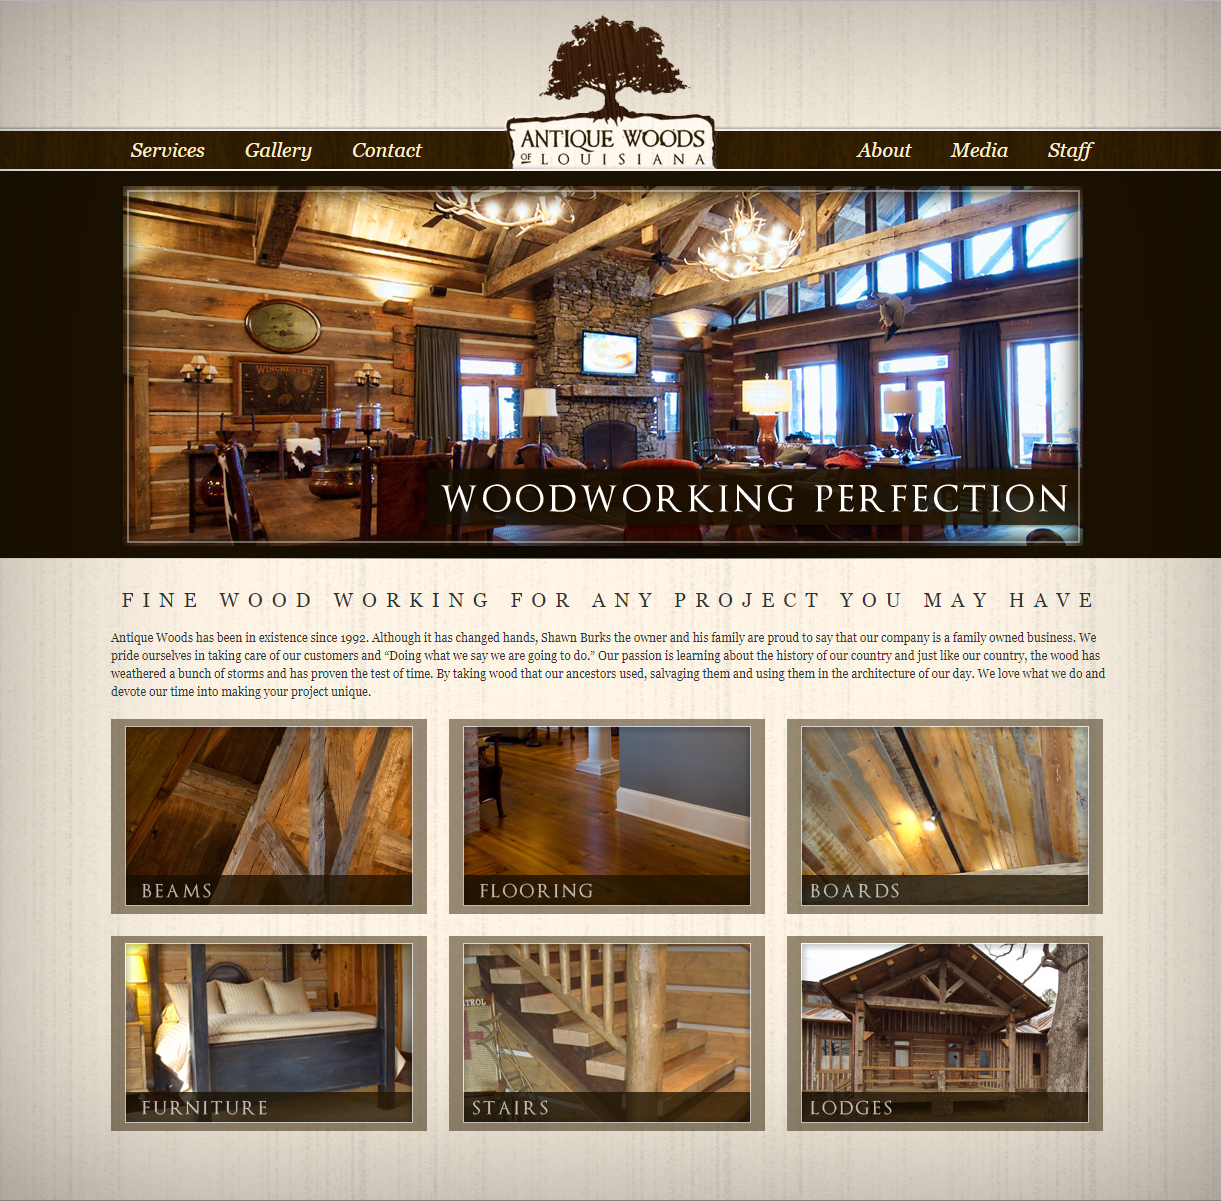 A woodworking web design screenshot for a company in Houston TX